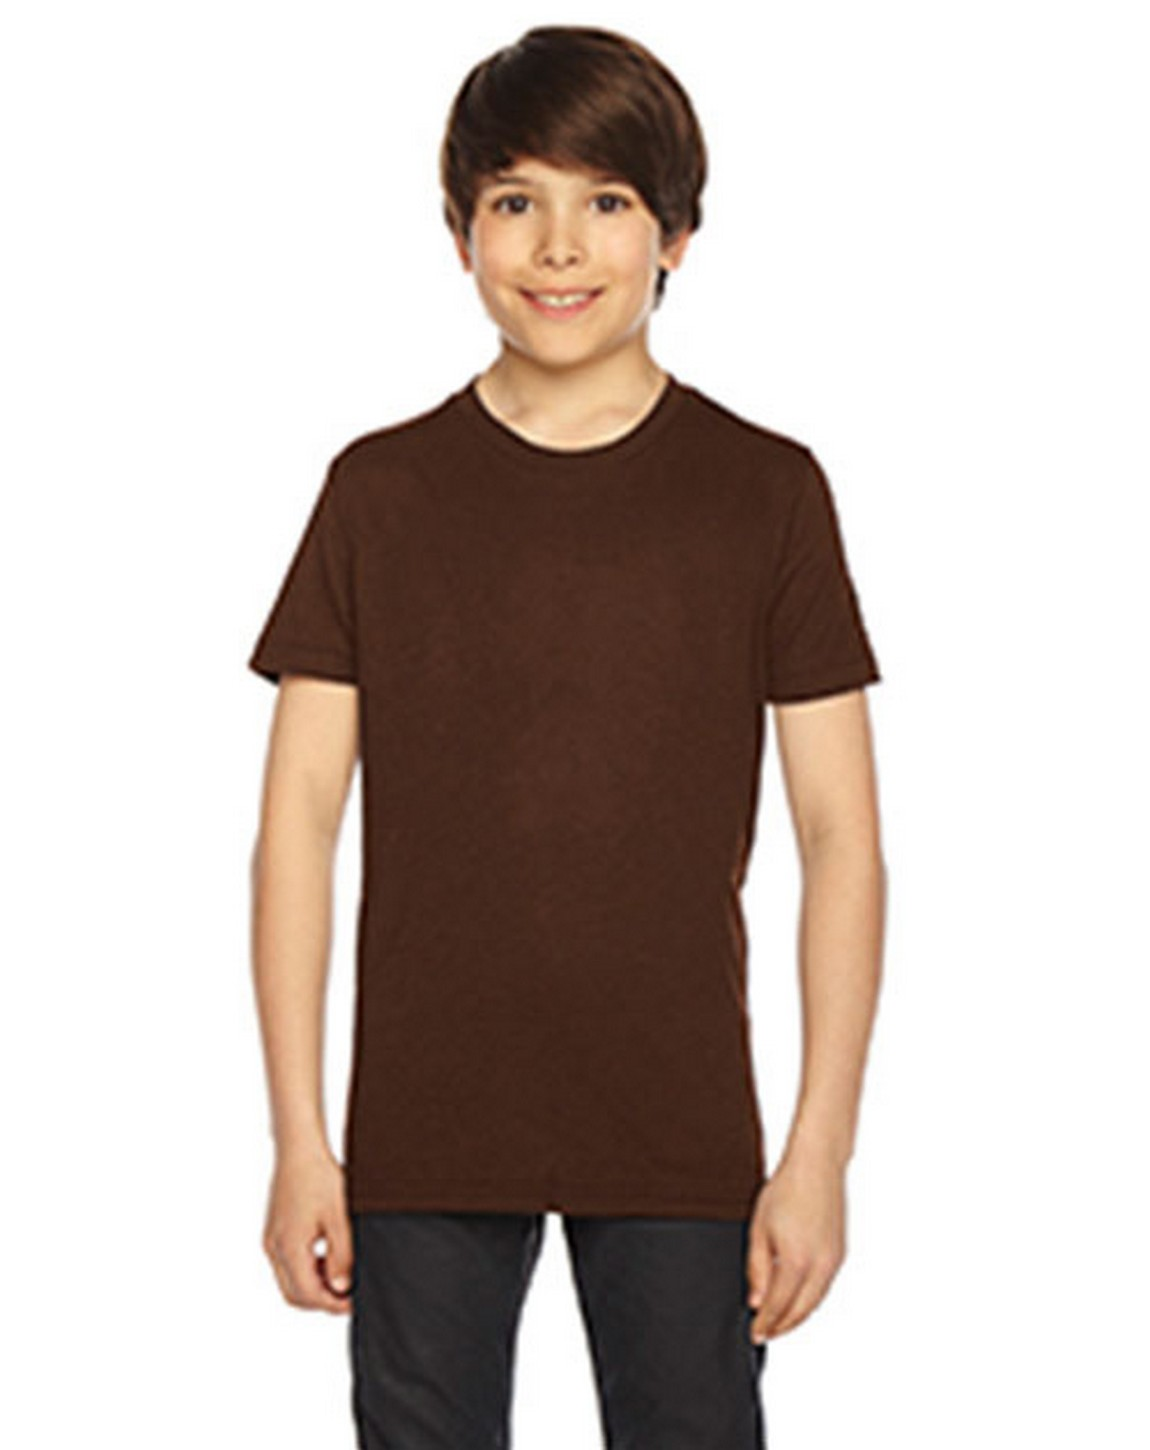 American Apparel BB201W Youth Poly-Cotton Short-Sleeve Crewneck T-Shirt